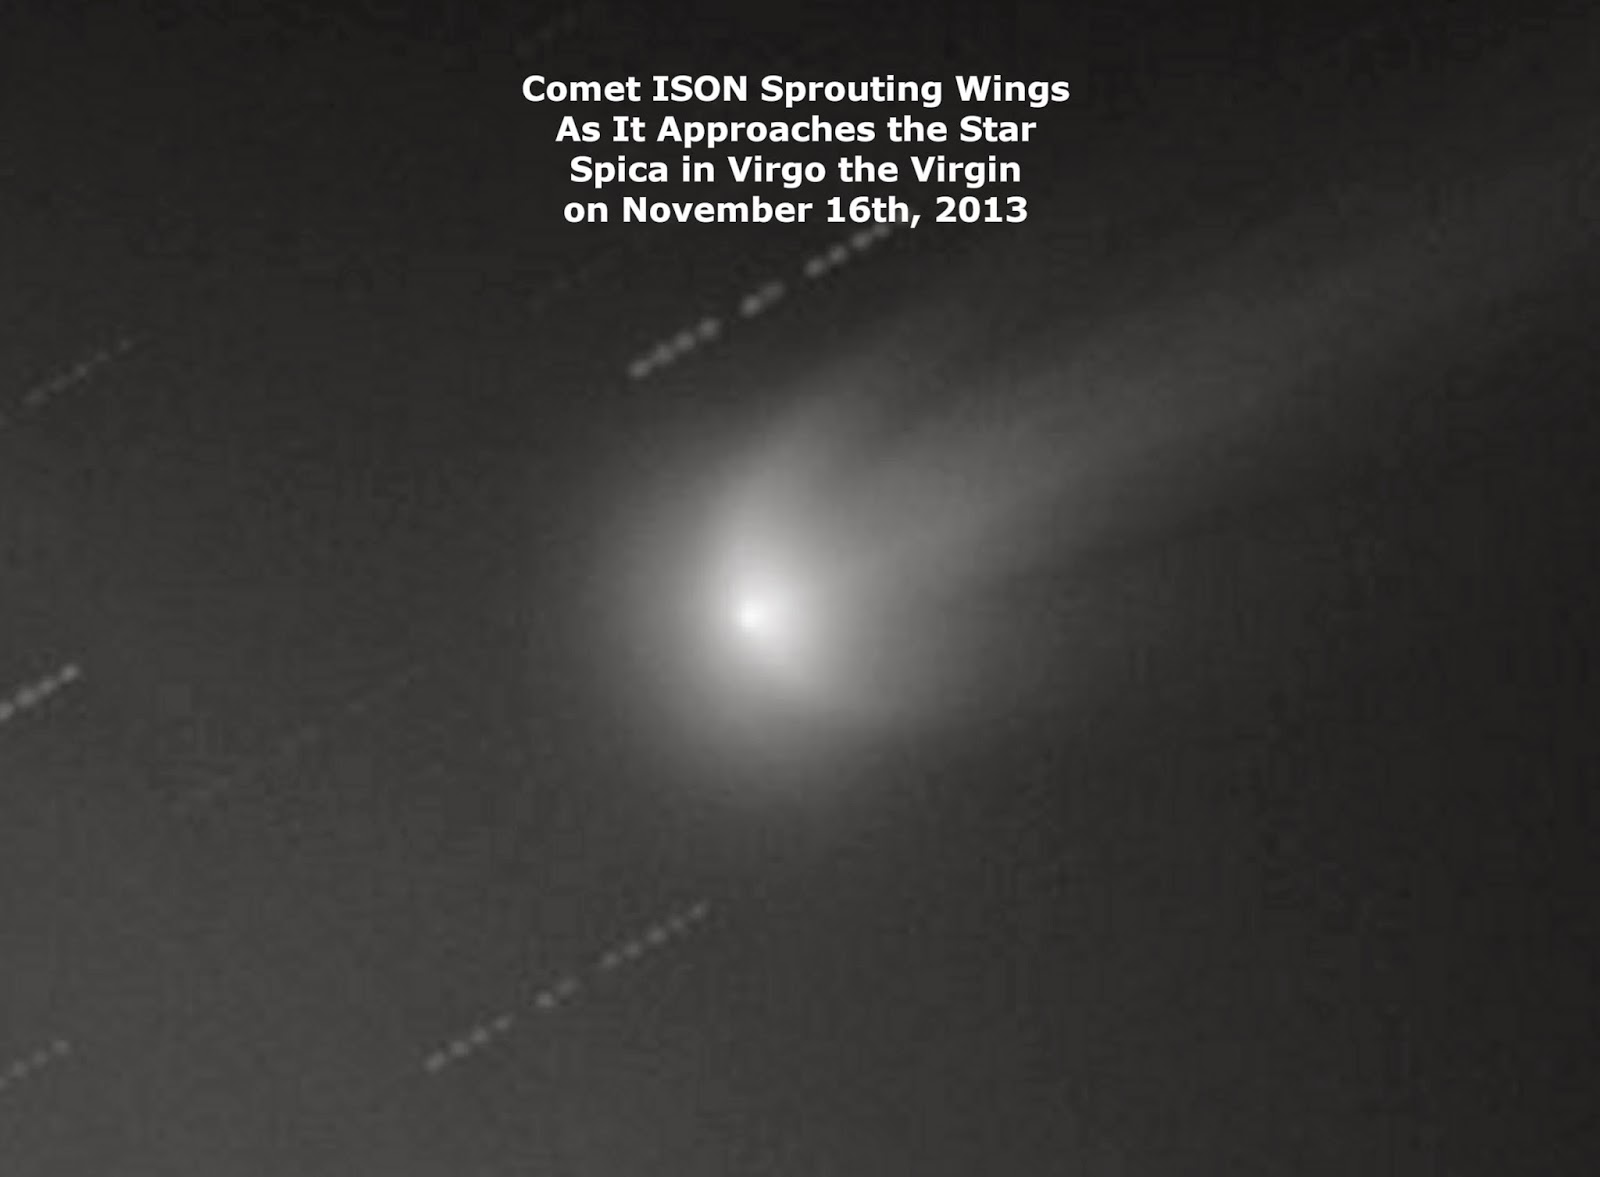 COMET ISON HAS SPROUTED RAPTURE WINGS!